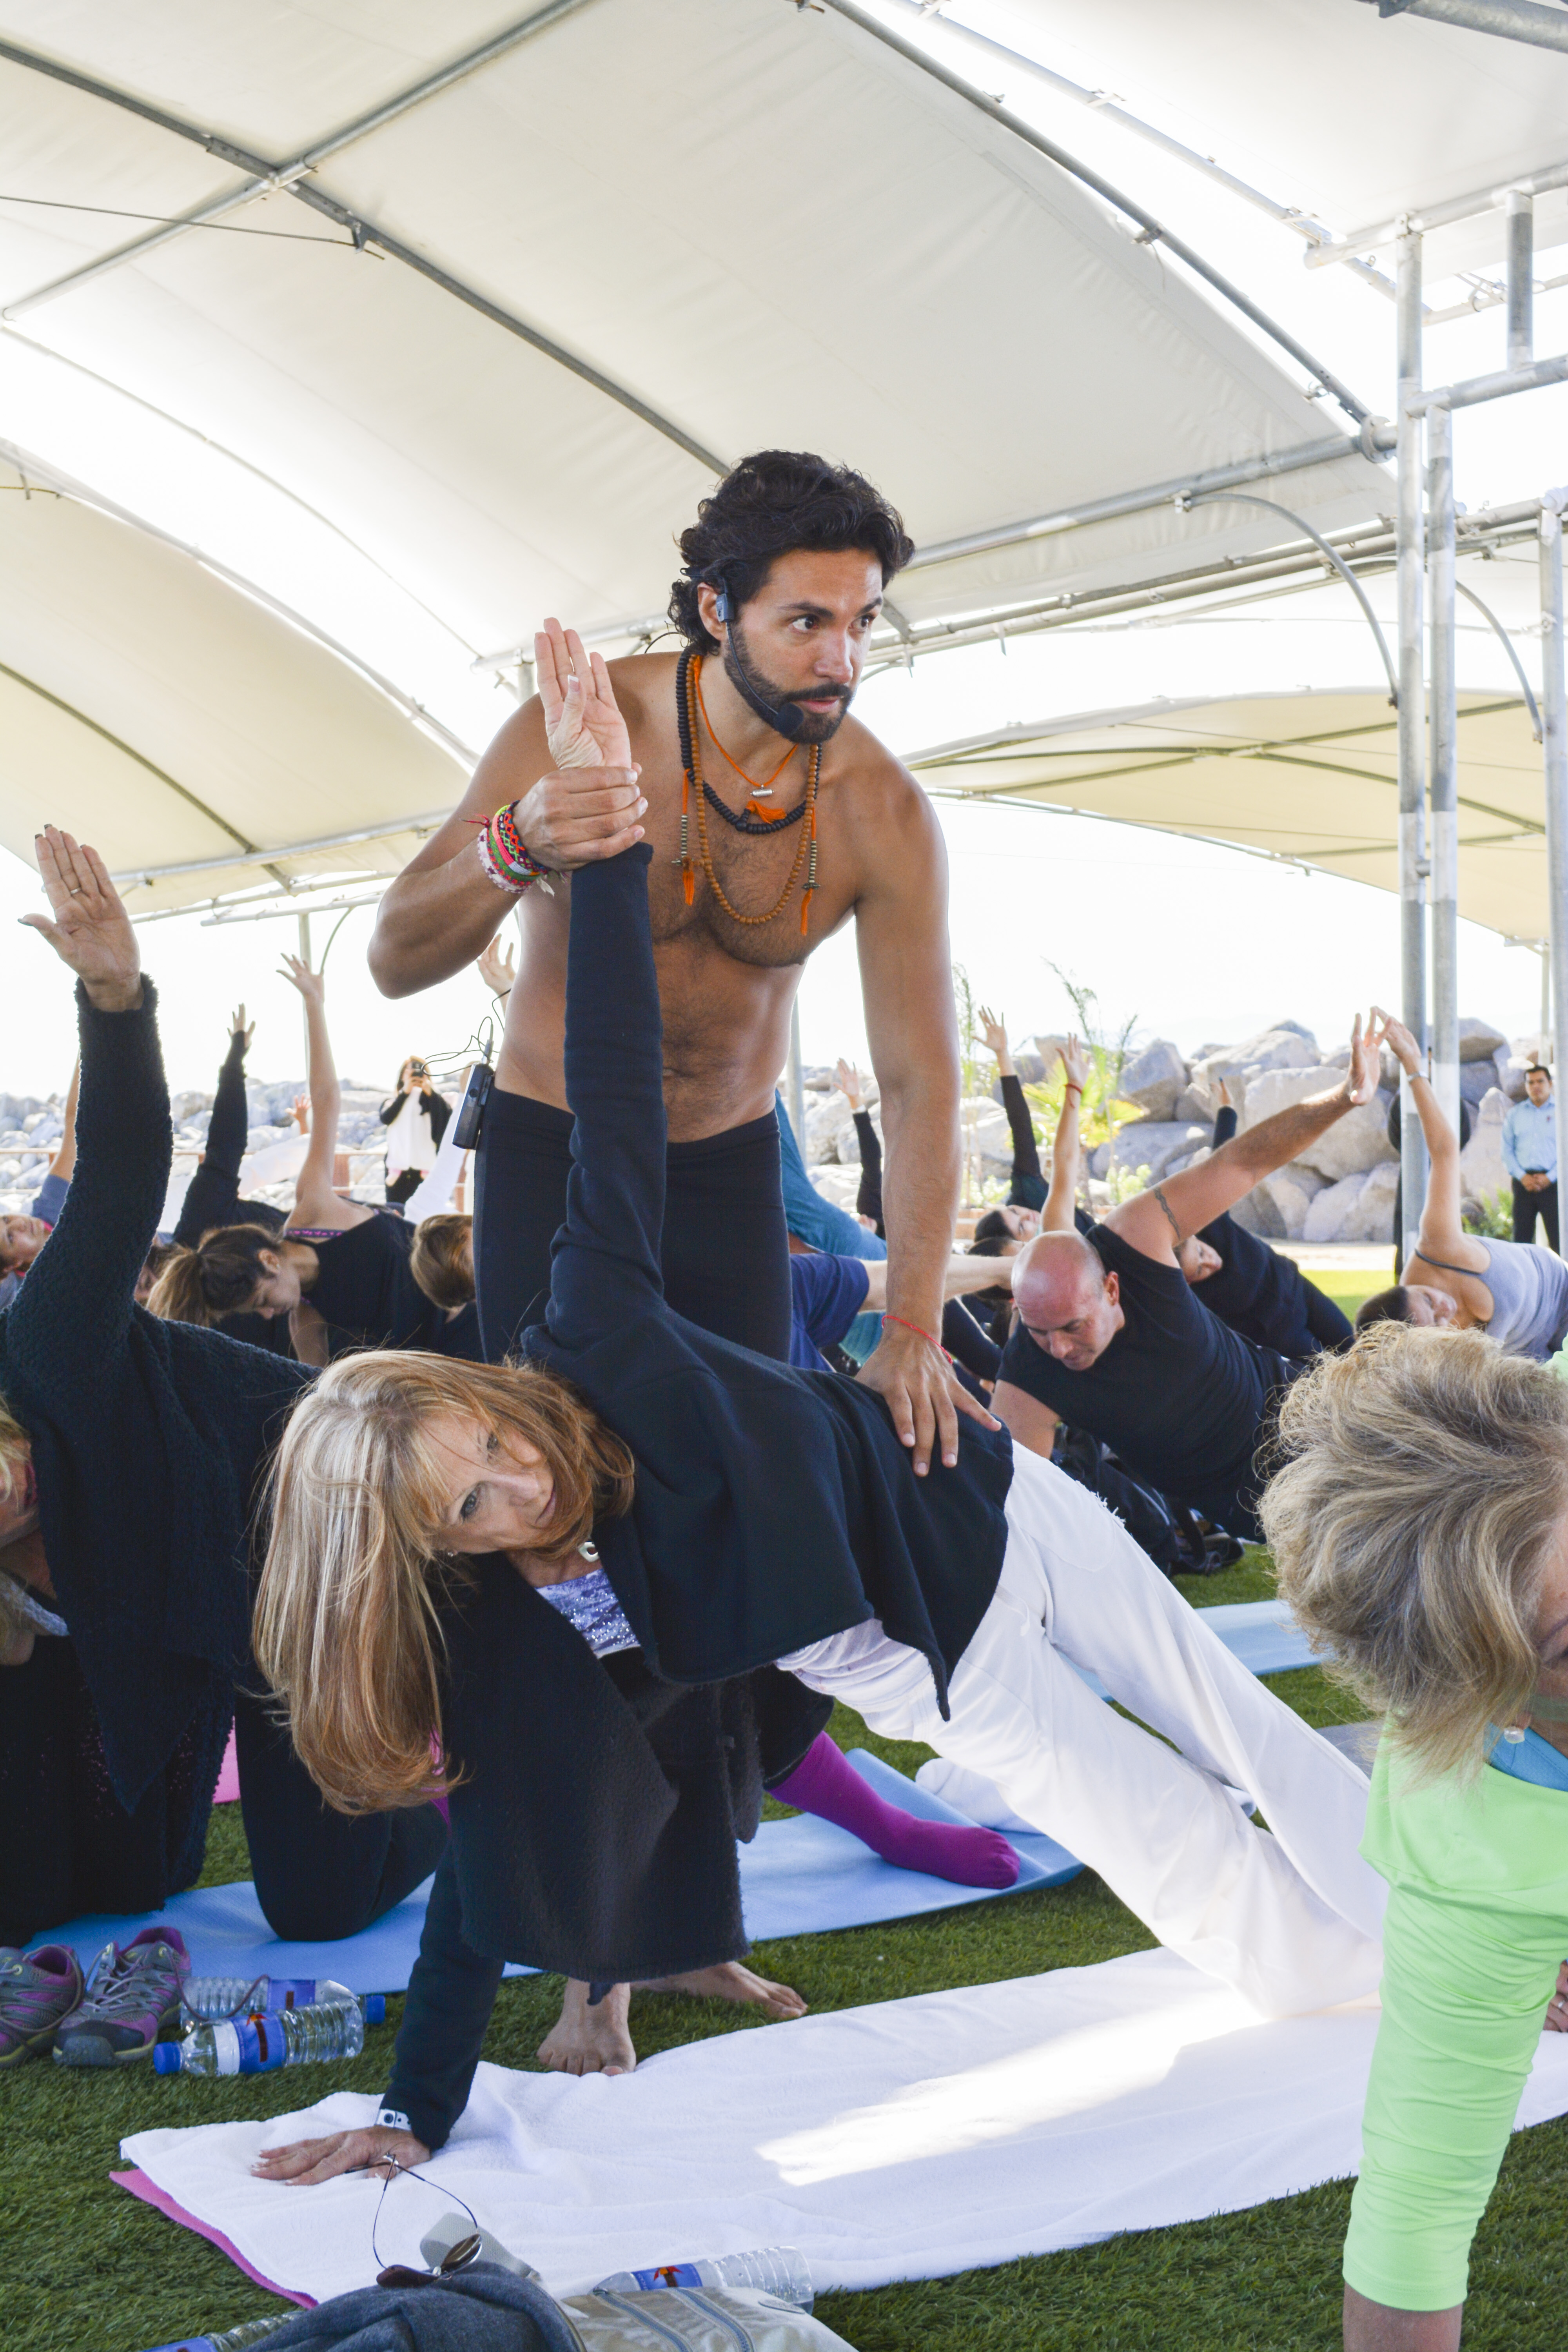 Alejandro Maldonado, Mexico's yoga guru, leads followers in warm-up stretching during a recent two-hour session staged on the grounds of the Hotel Coral and Marina near Ensenada. Photo by Alejandra Castro